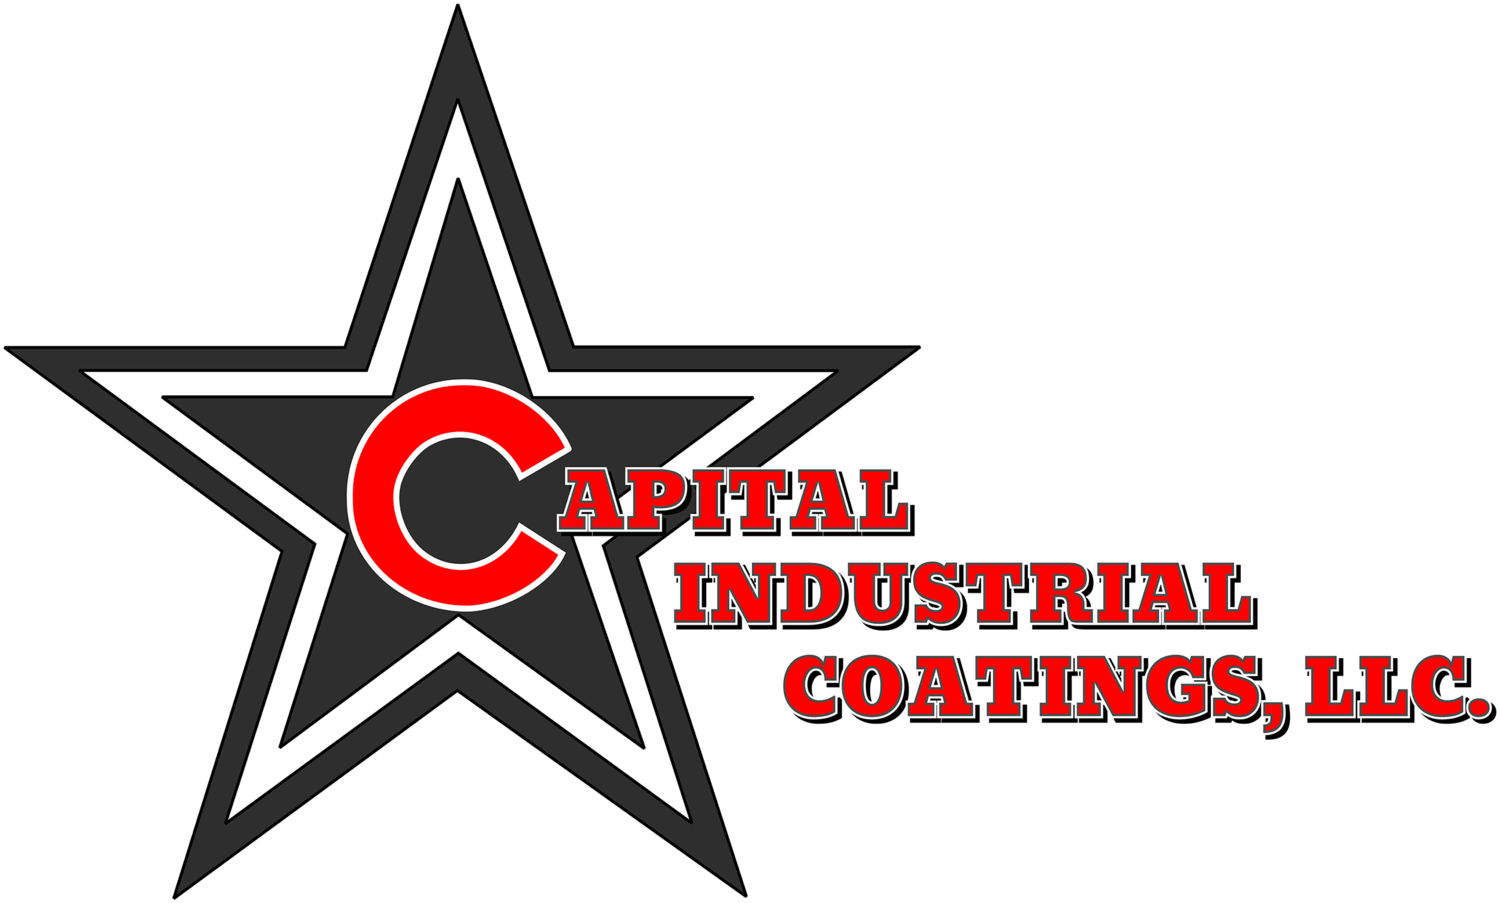 Capital Industrial Coatings